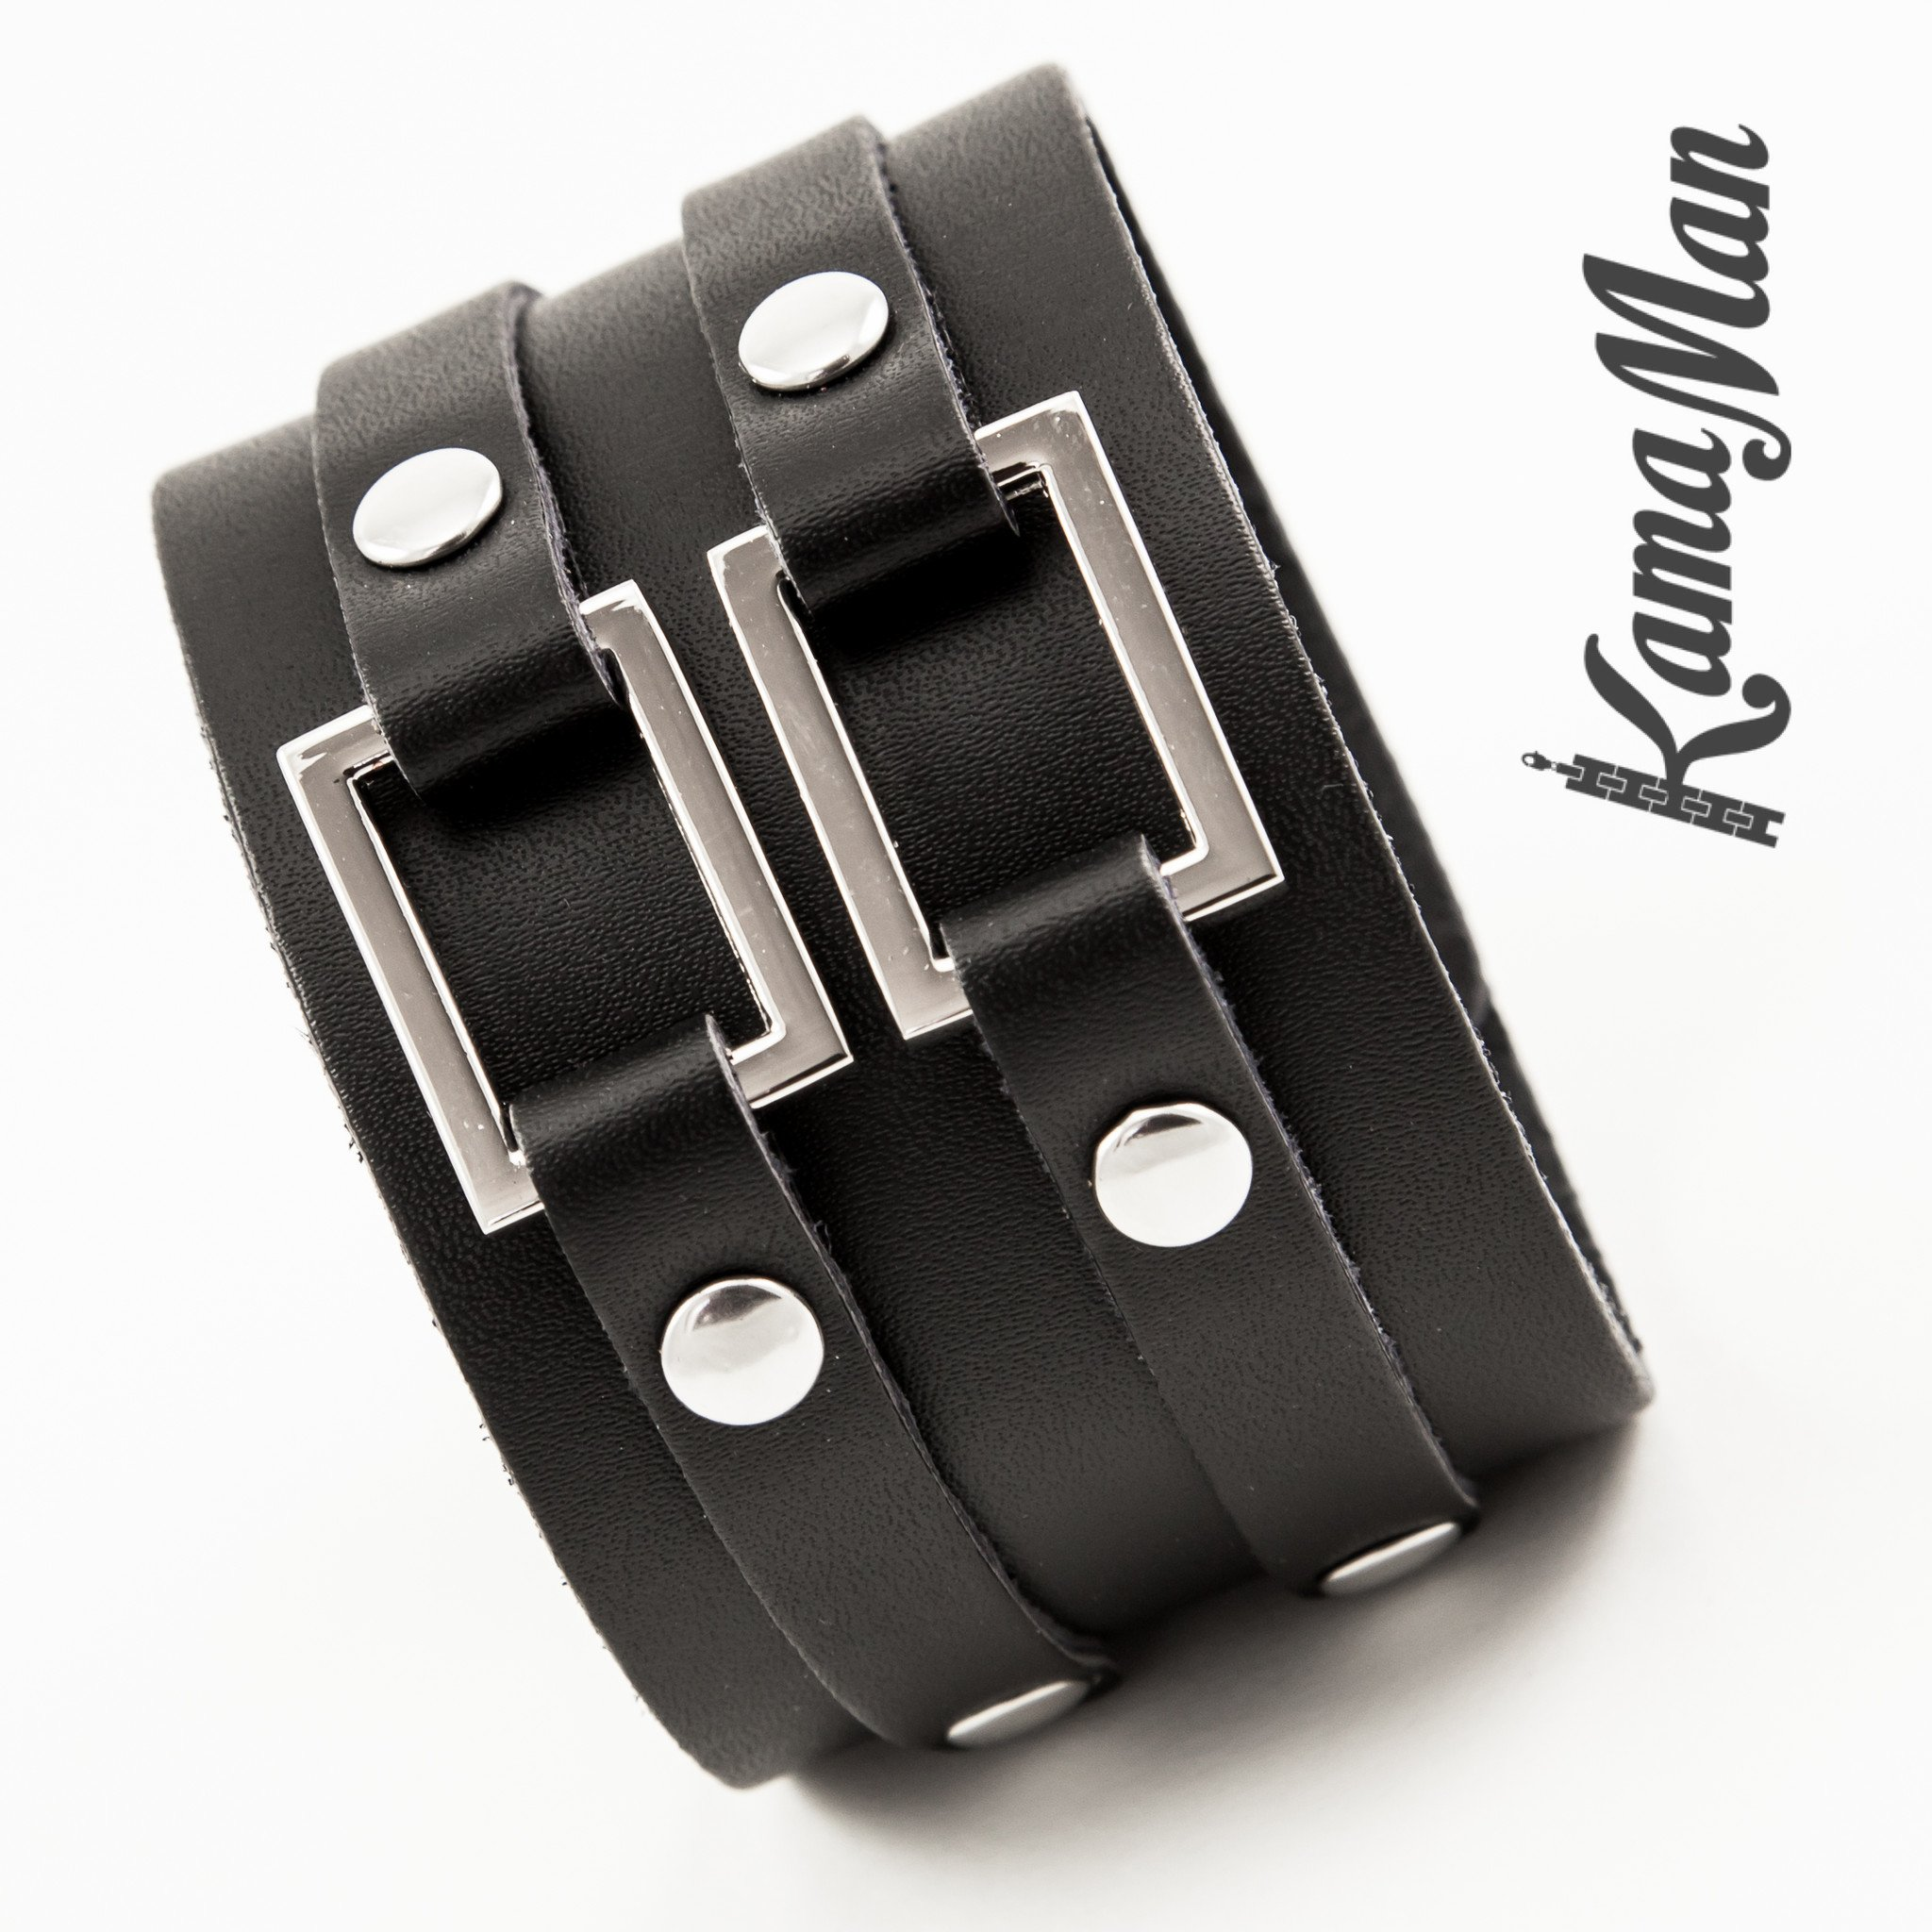 ... menu0027s bracelet - dual closure black leather cuff bracelet - 4 ... jgeoocj